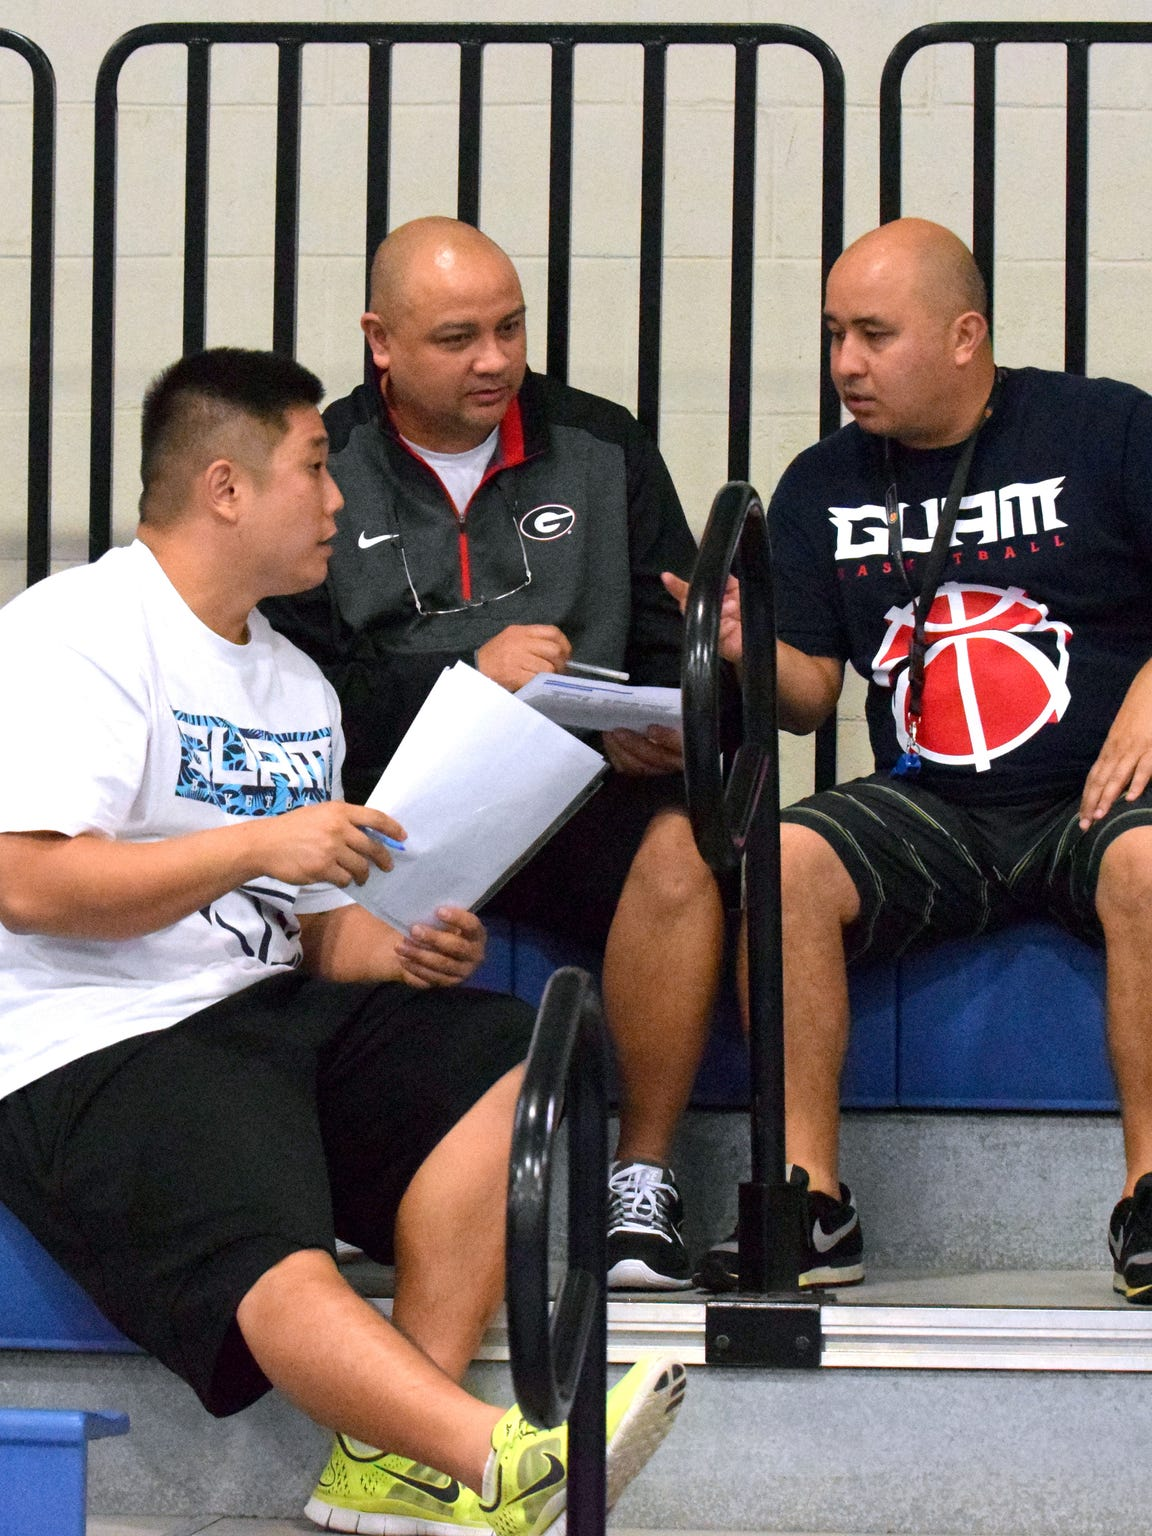 Coaches Jimmie Yi (left) Sid Guzman (center) and Eddie